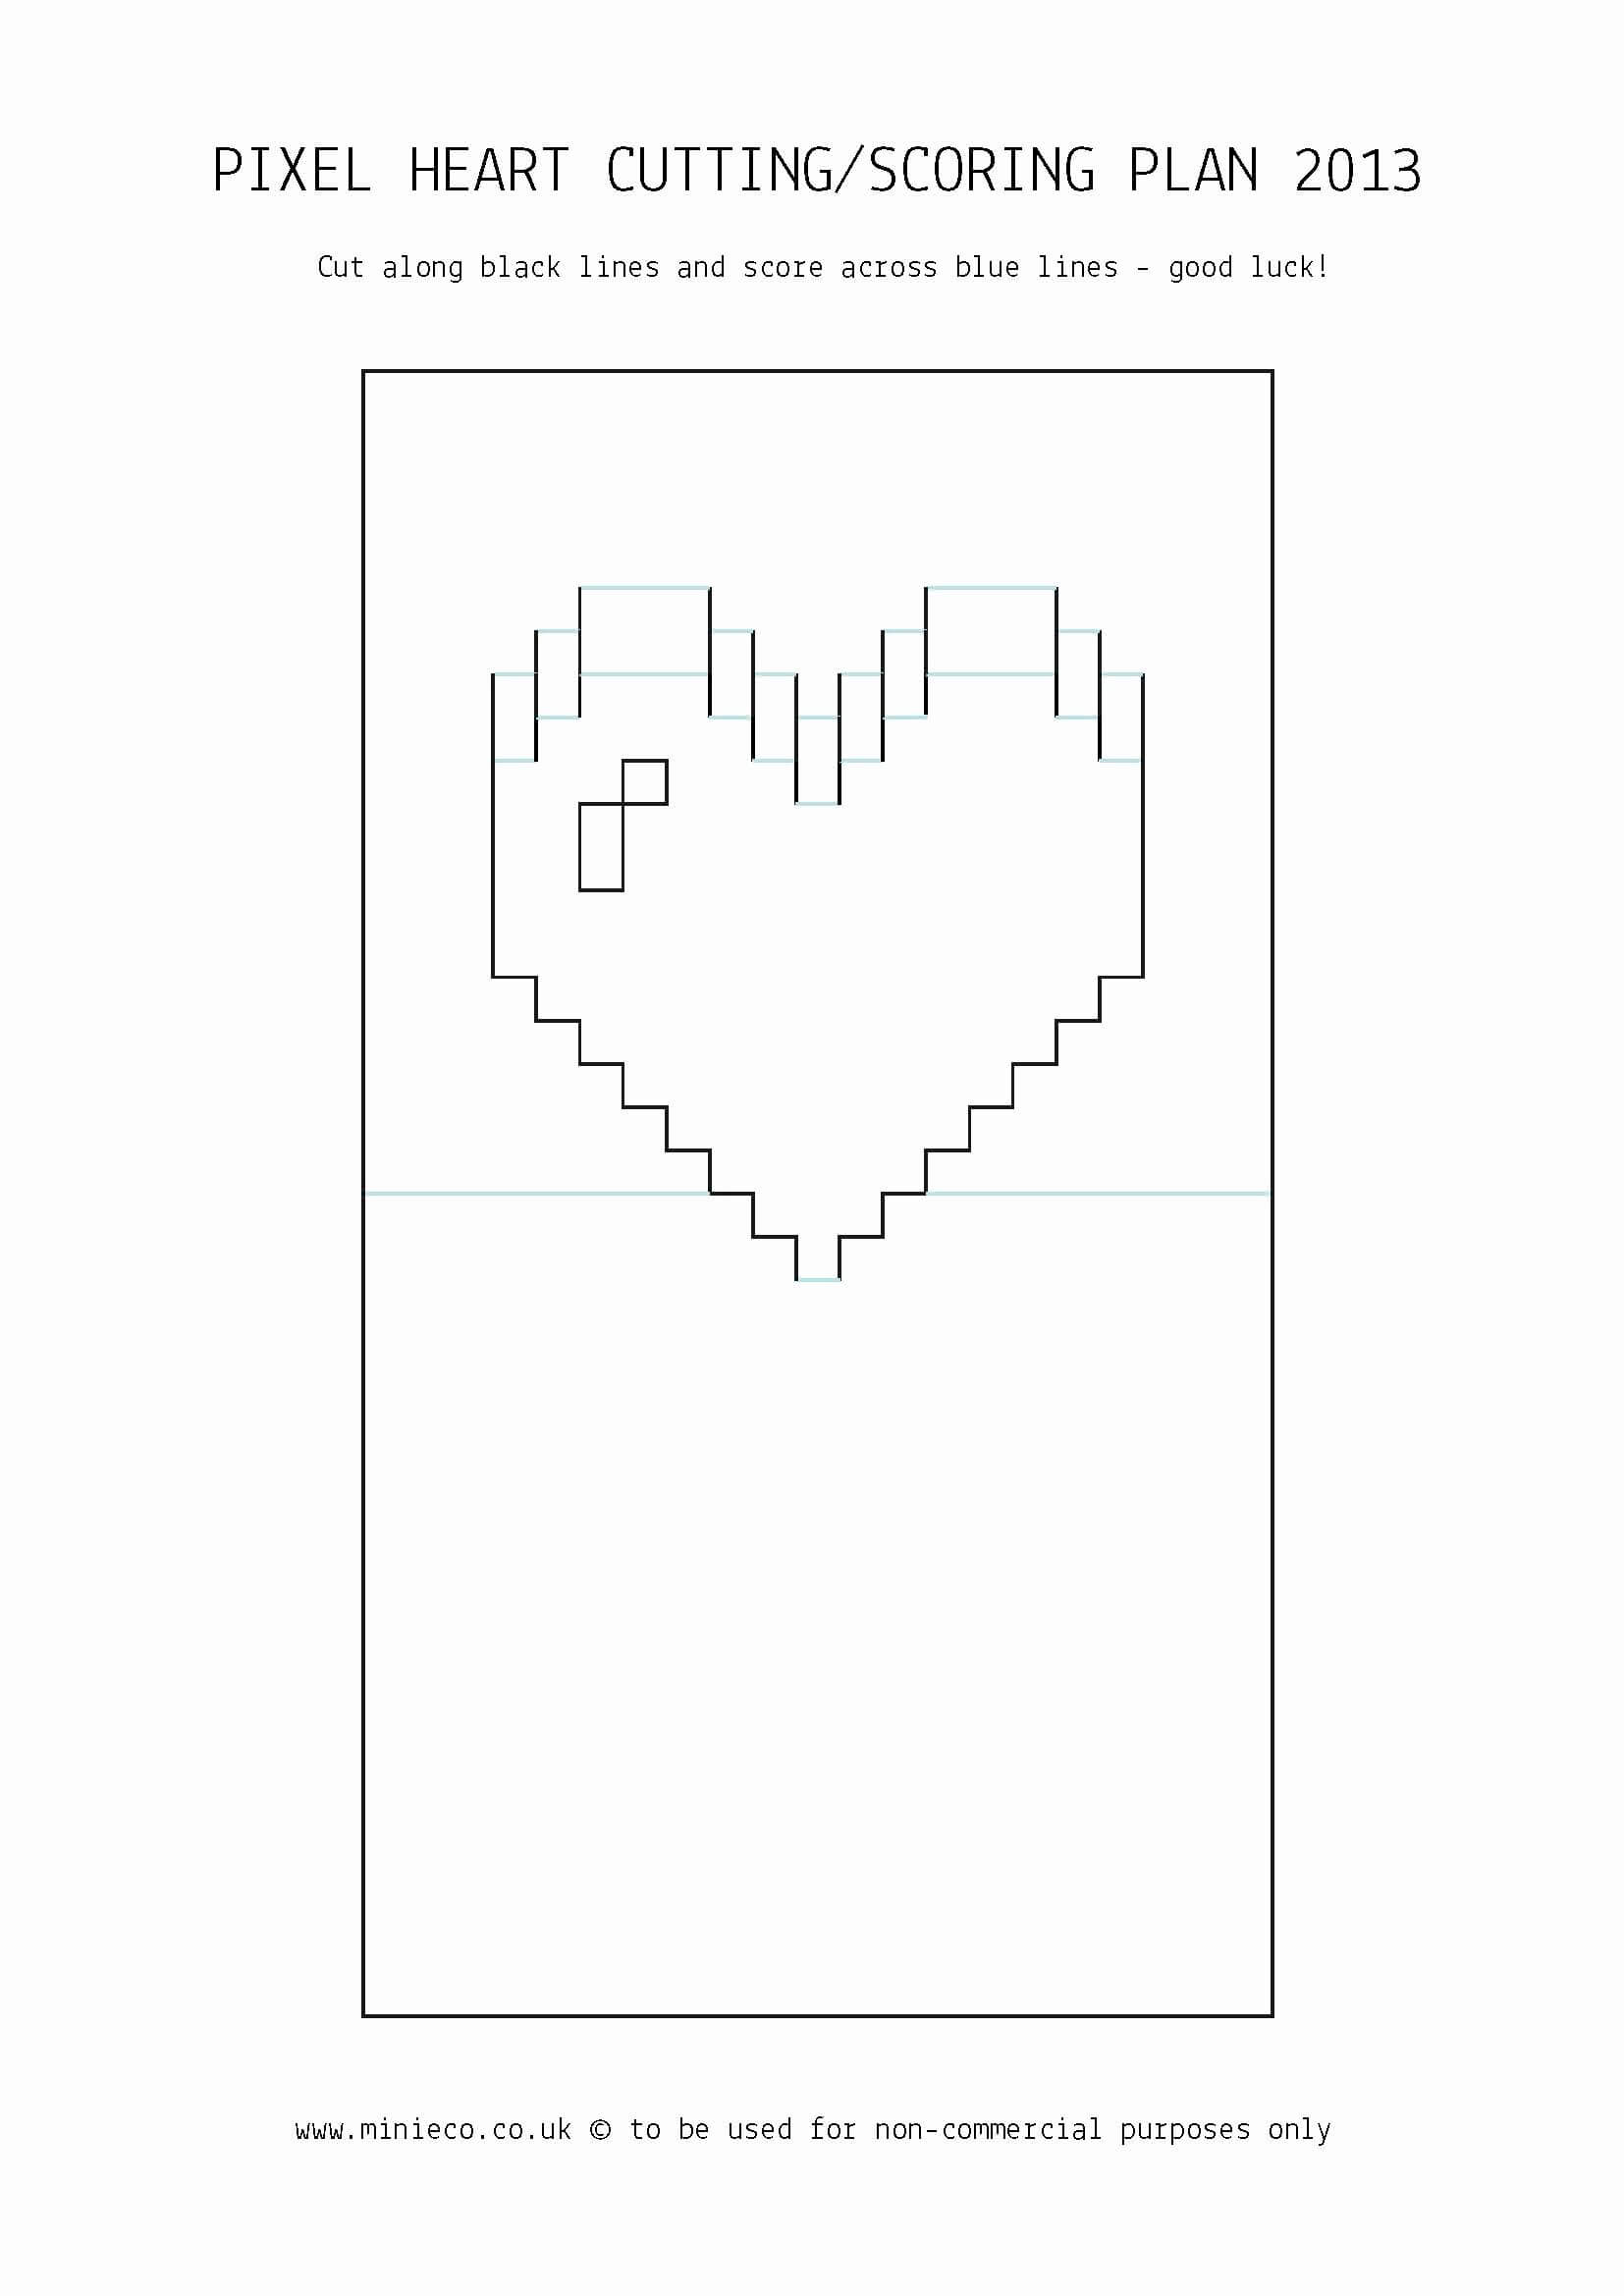 Laura Volpes Free Pop Up Box Card Template Pertaining To Pixel Heart Pop Up Card Template